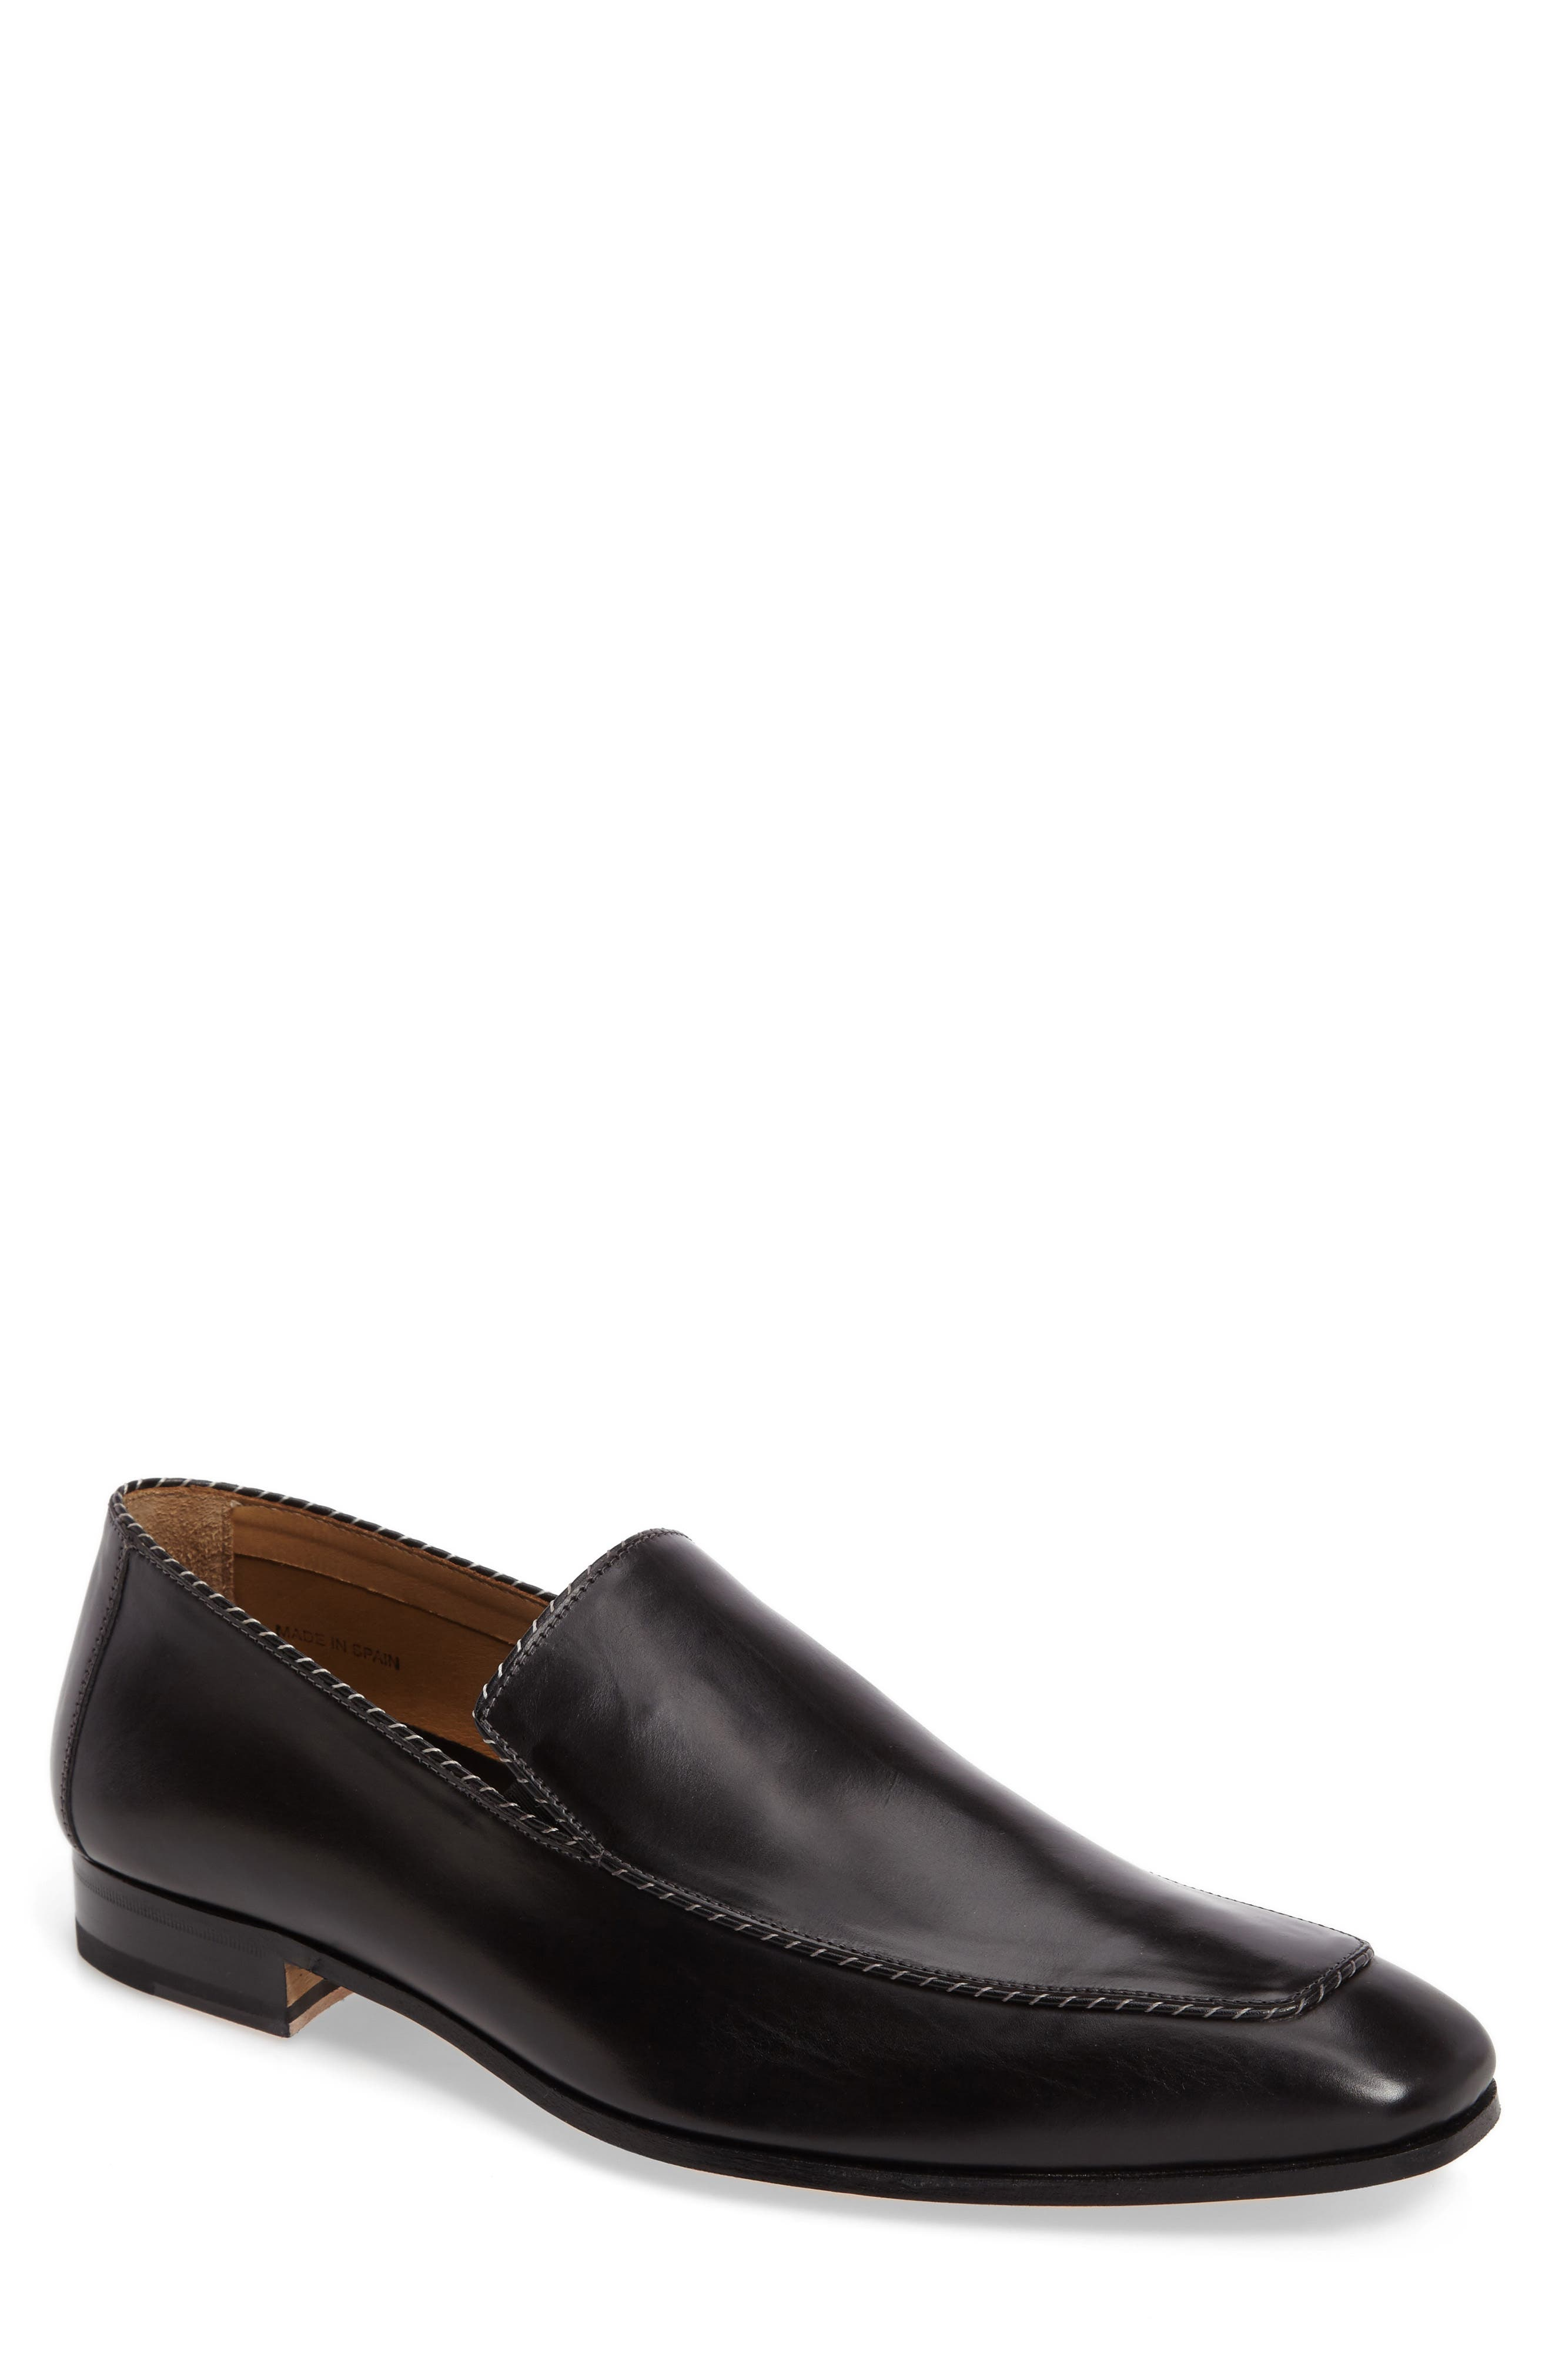 Brandt Venetian Loafer,                             Main thumbnail 1, color,                             Black Leather